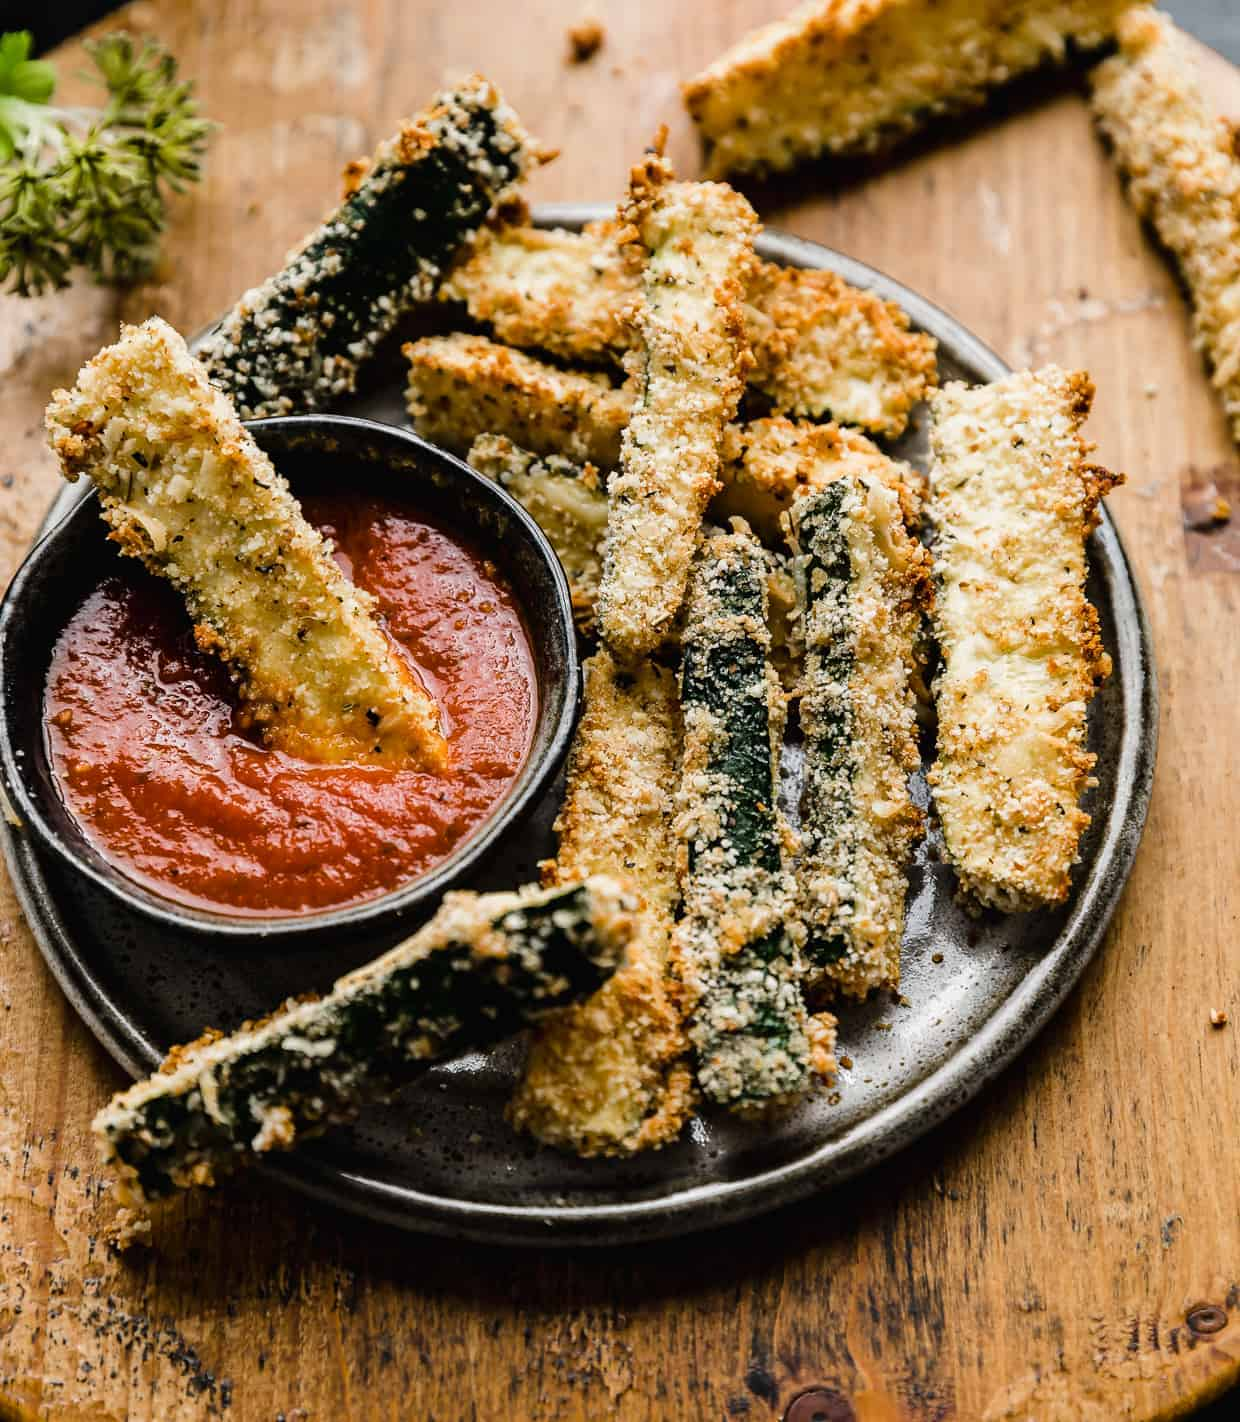 Zucchini fries on a black plate against a wooden background, with one zucchini fry dipped into pizza sauce.